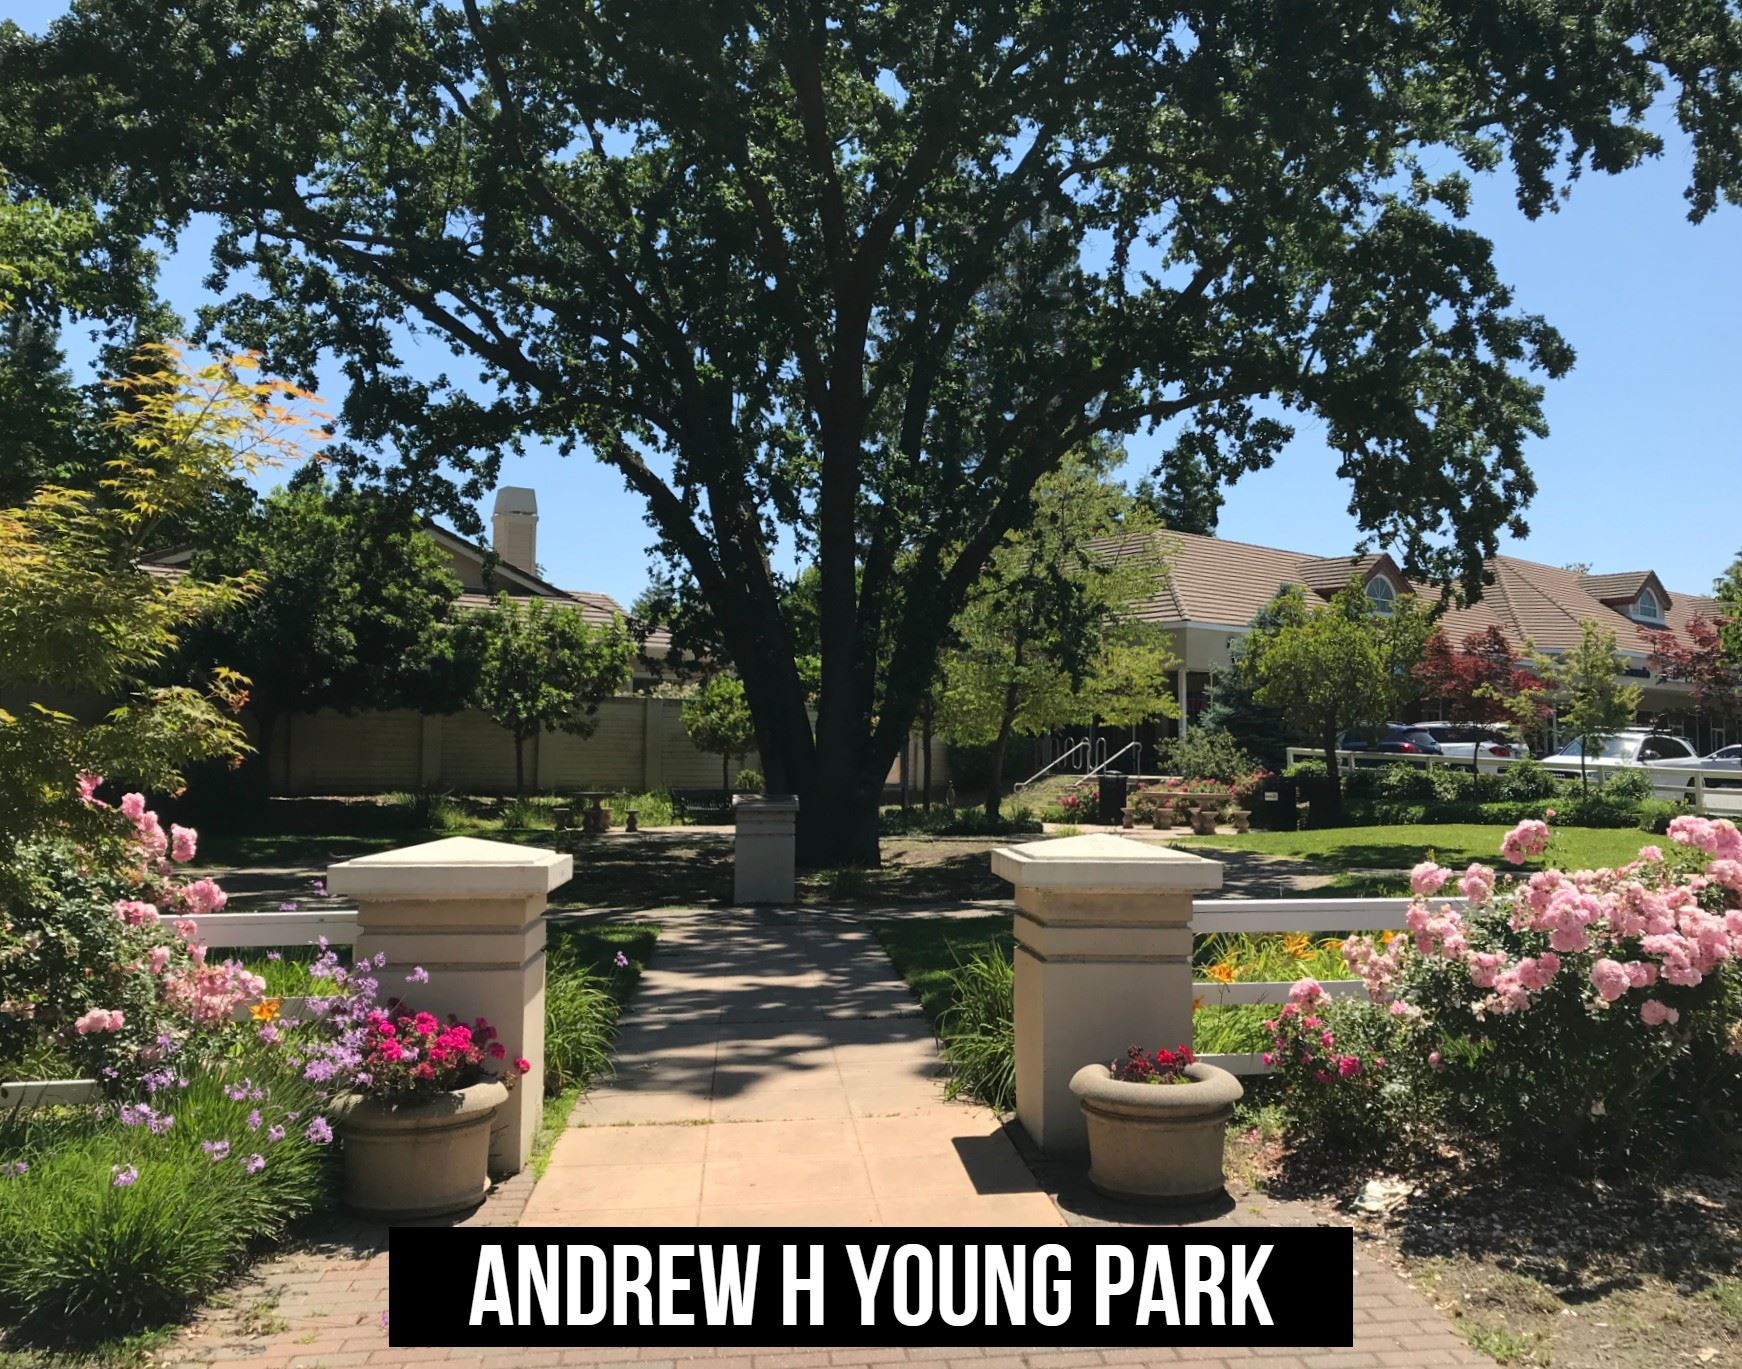 Andrew H Young Park